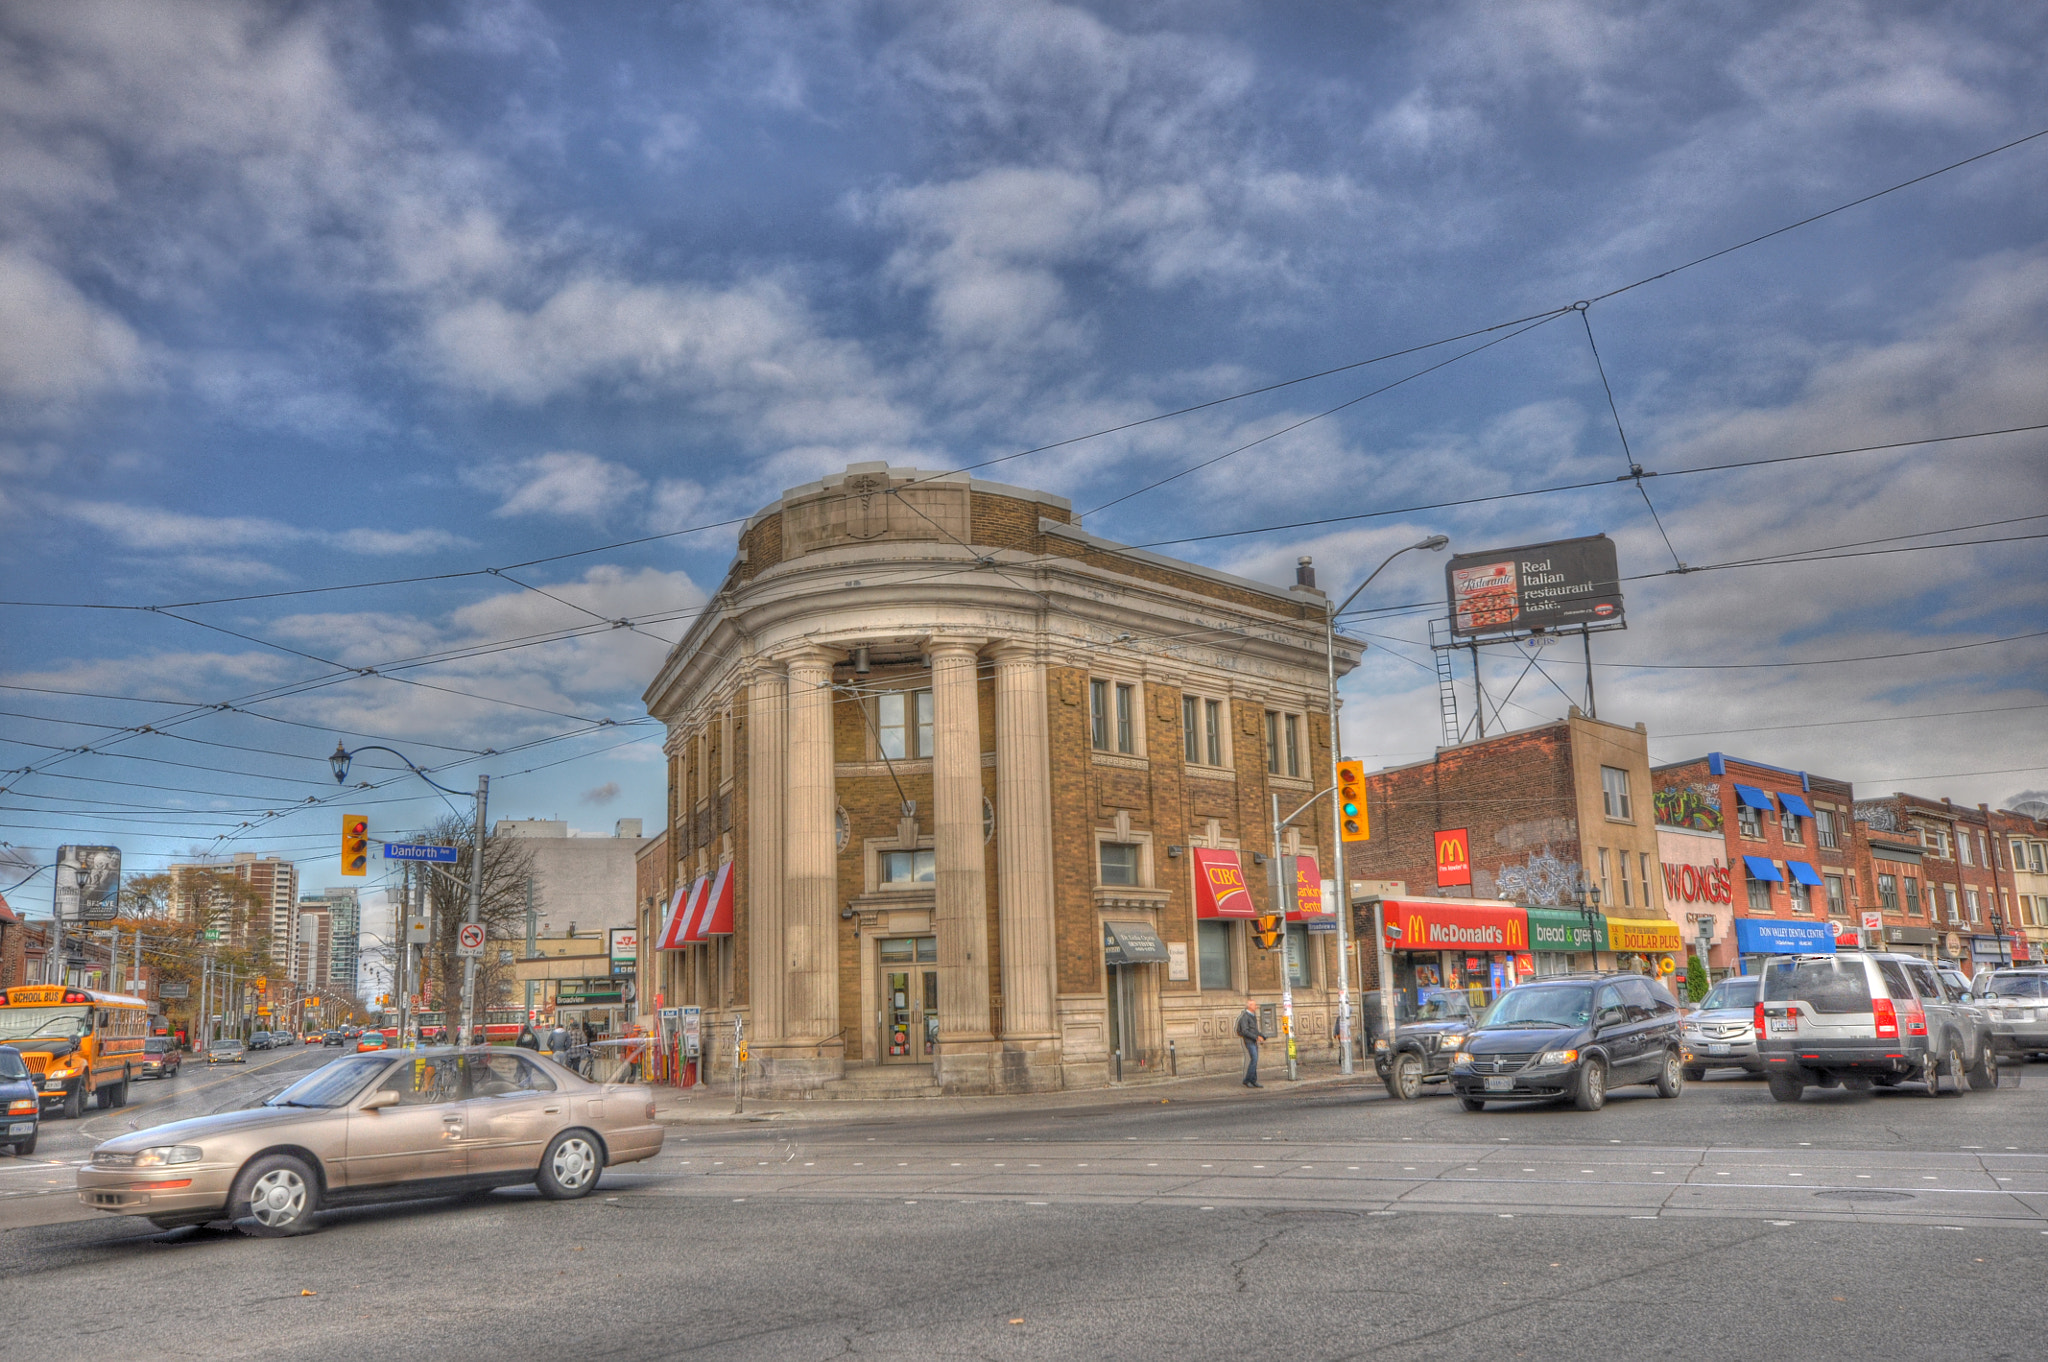 Photograph Bank on the Danforth by Peter Gowdy on 500px